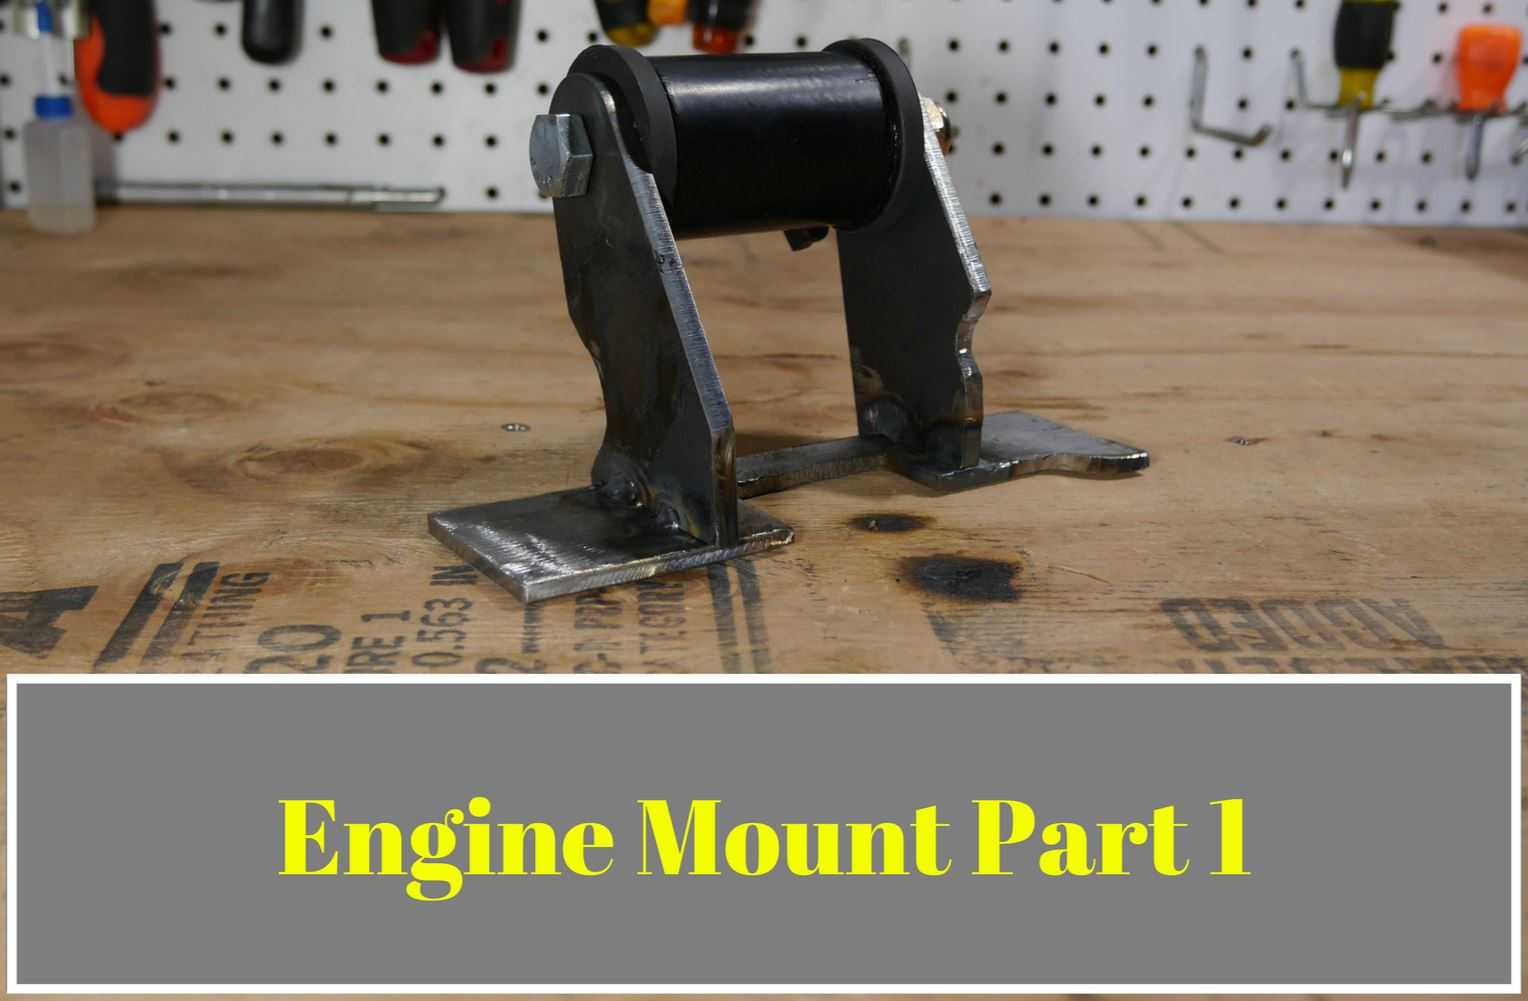 Enginemount part 1.JPG